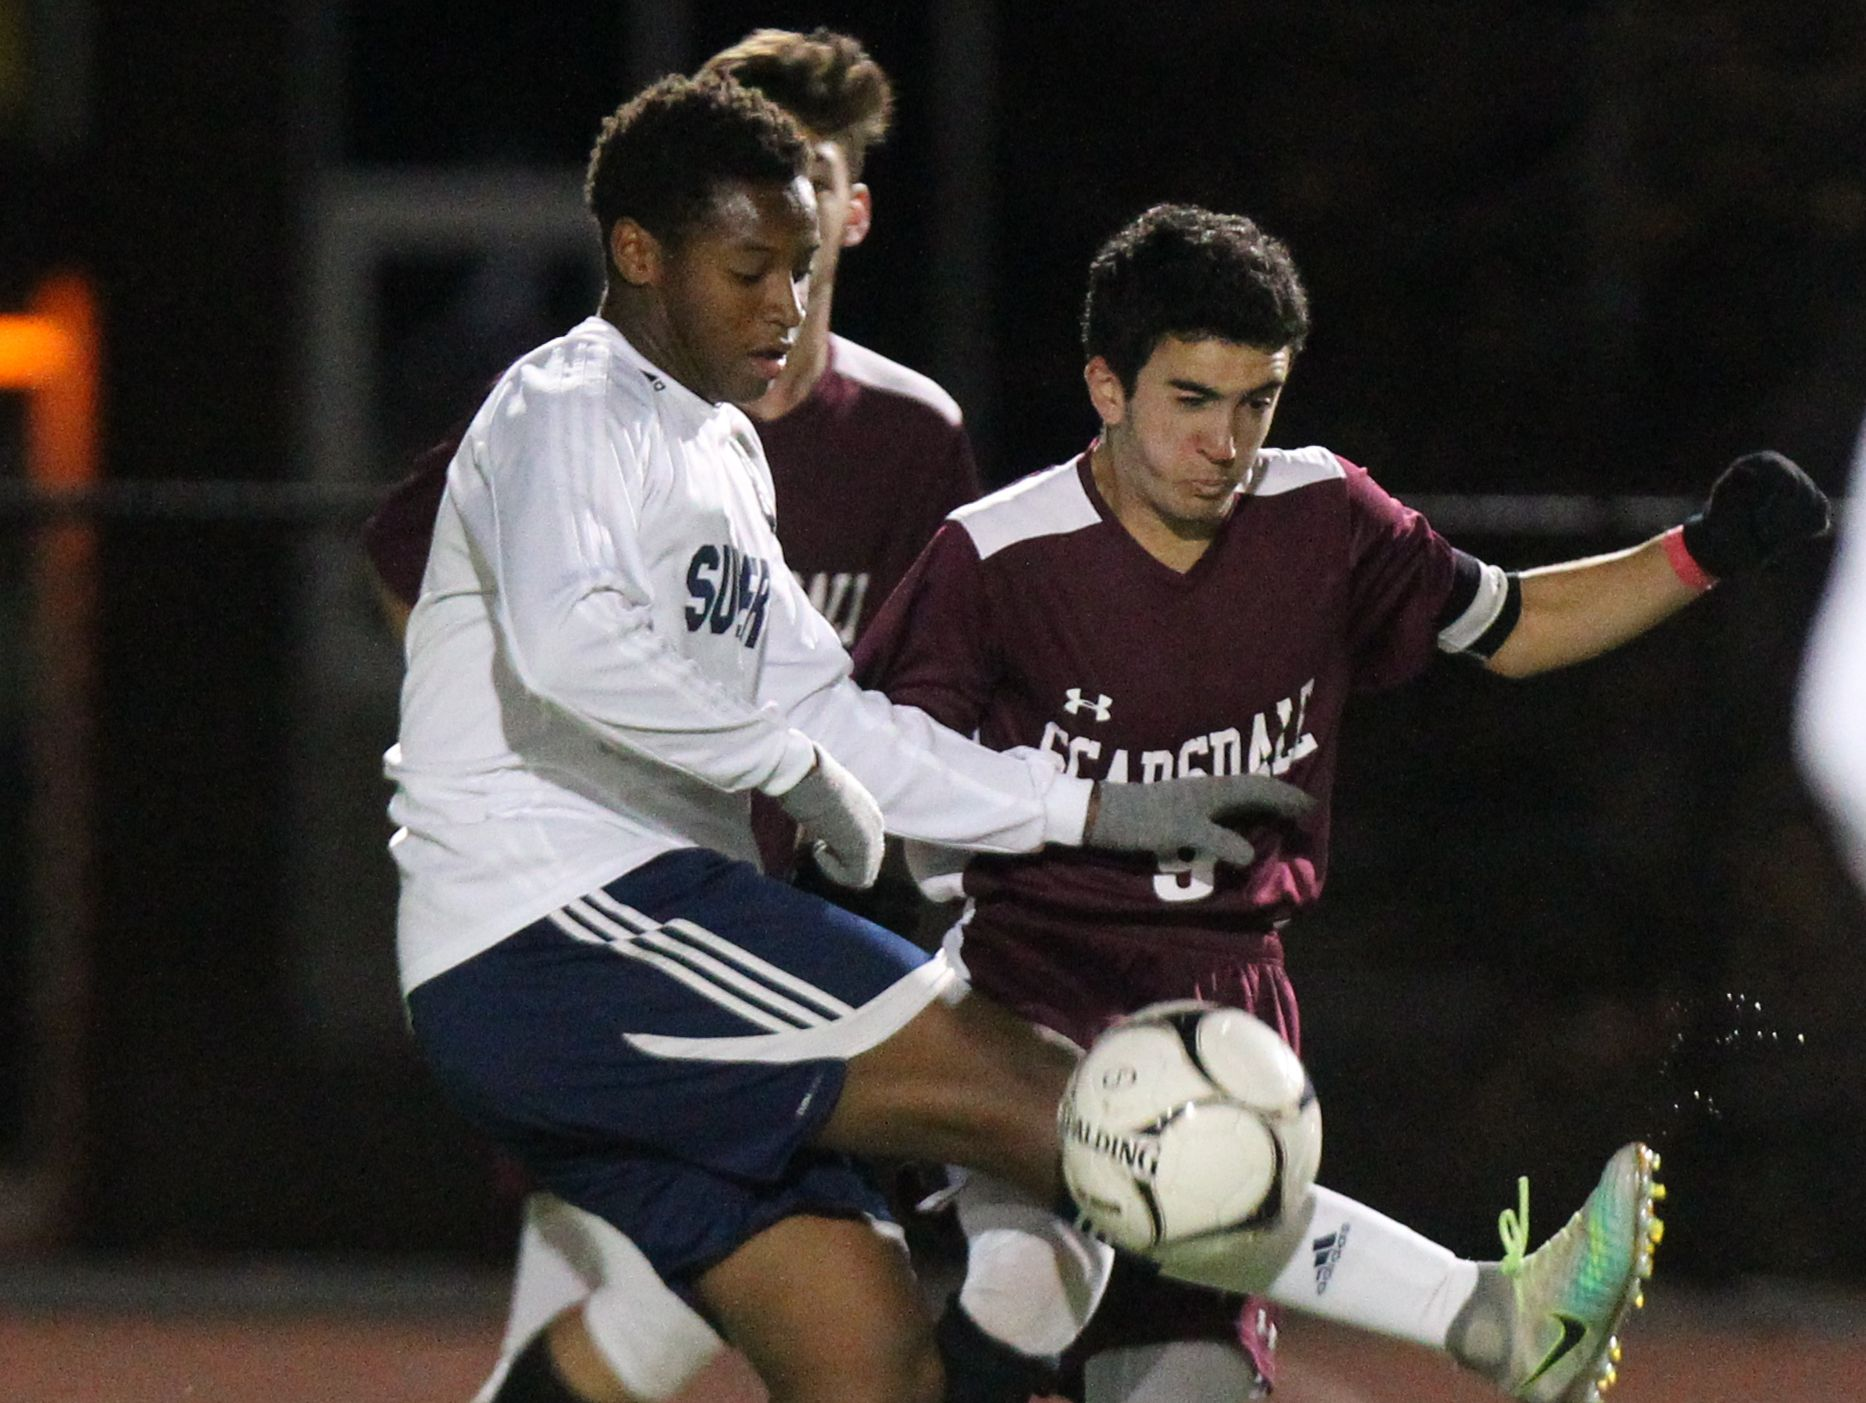 Suffern's Harrison Dranoff, left, is pressured by Scarsdale's Michael Spiro during their Class AA boys soccer quarterfinal at Suffern Oct. 24, 2016.